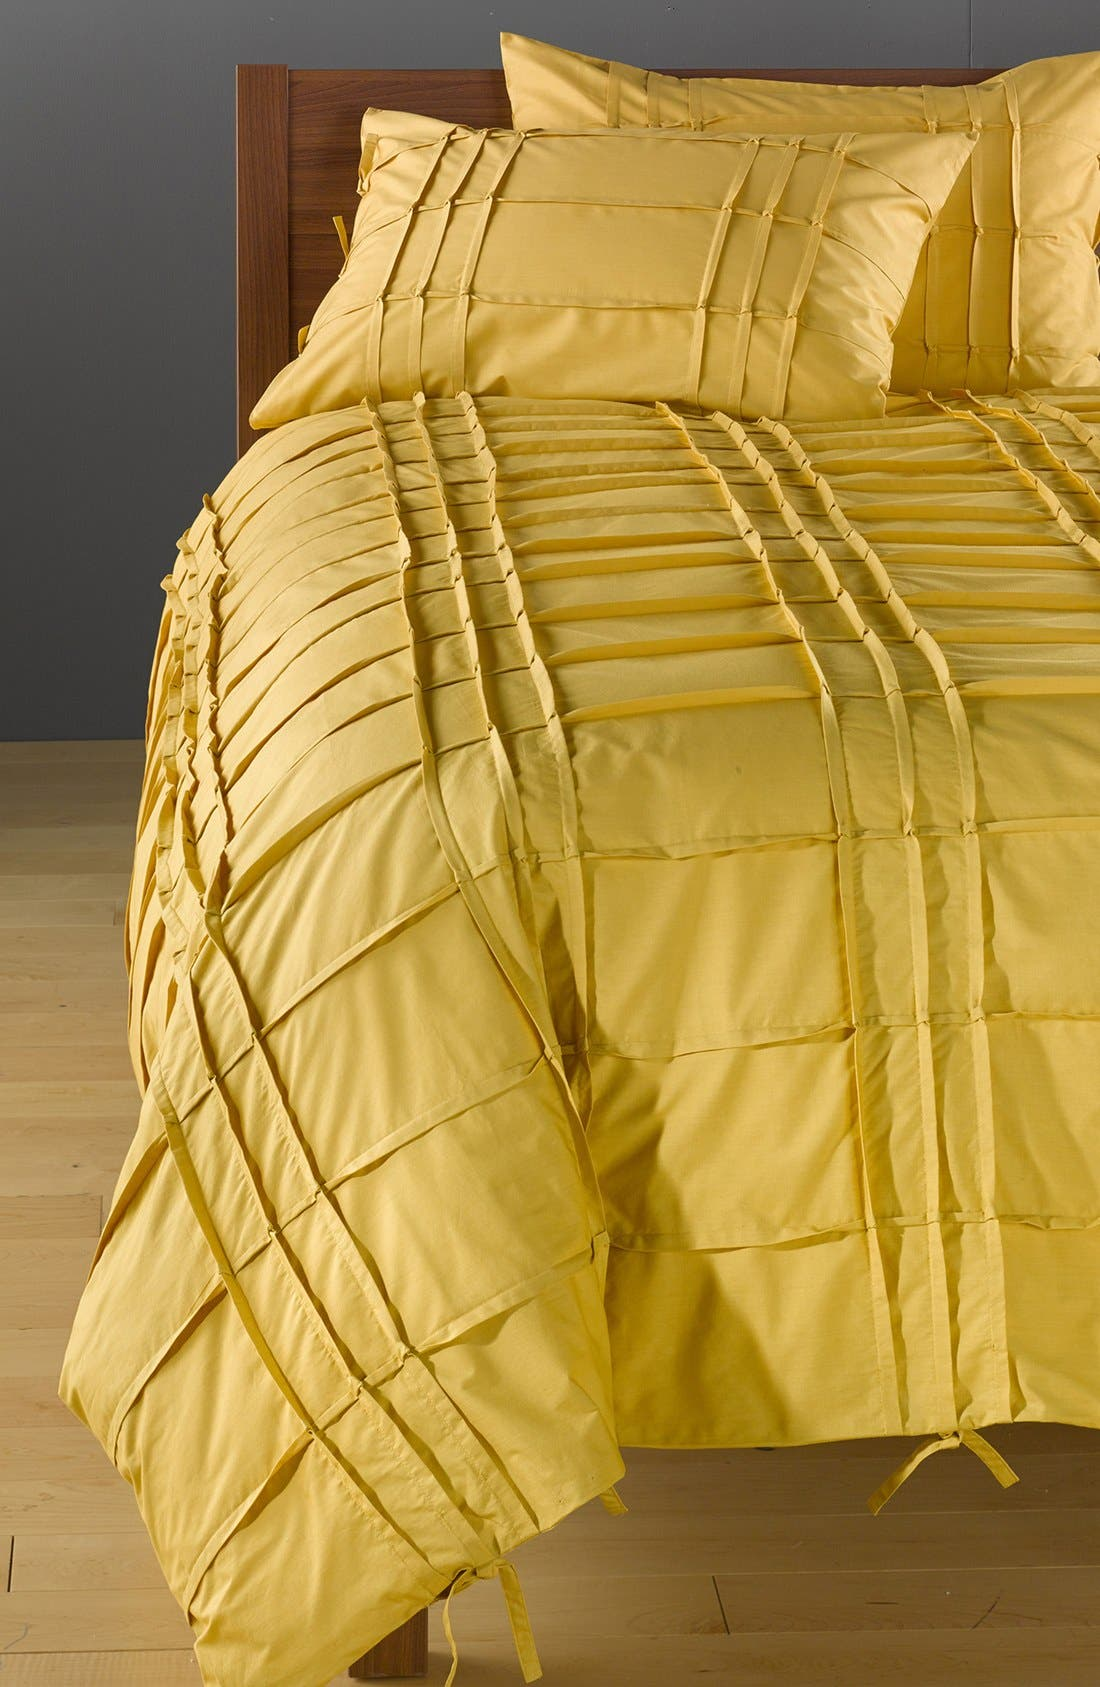 Alternate Image 1 Selected - Nordstrom at Home 'Carson' Duvet Cover